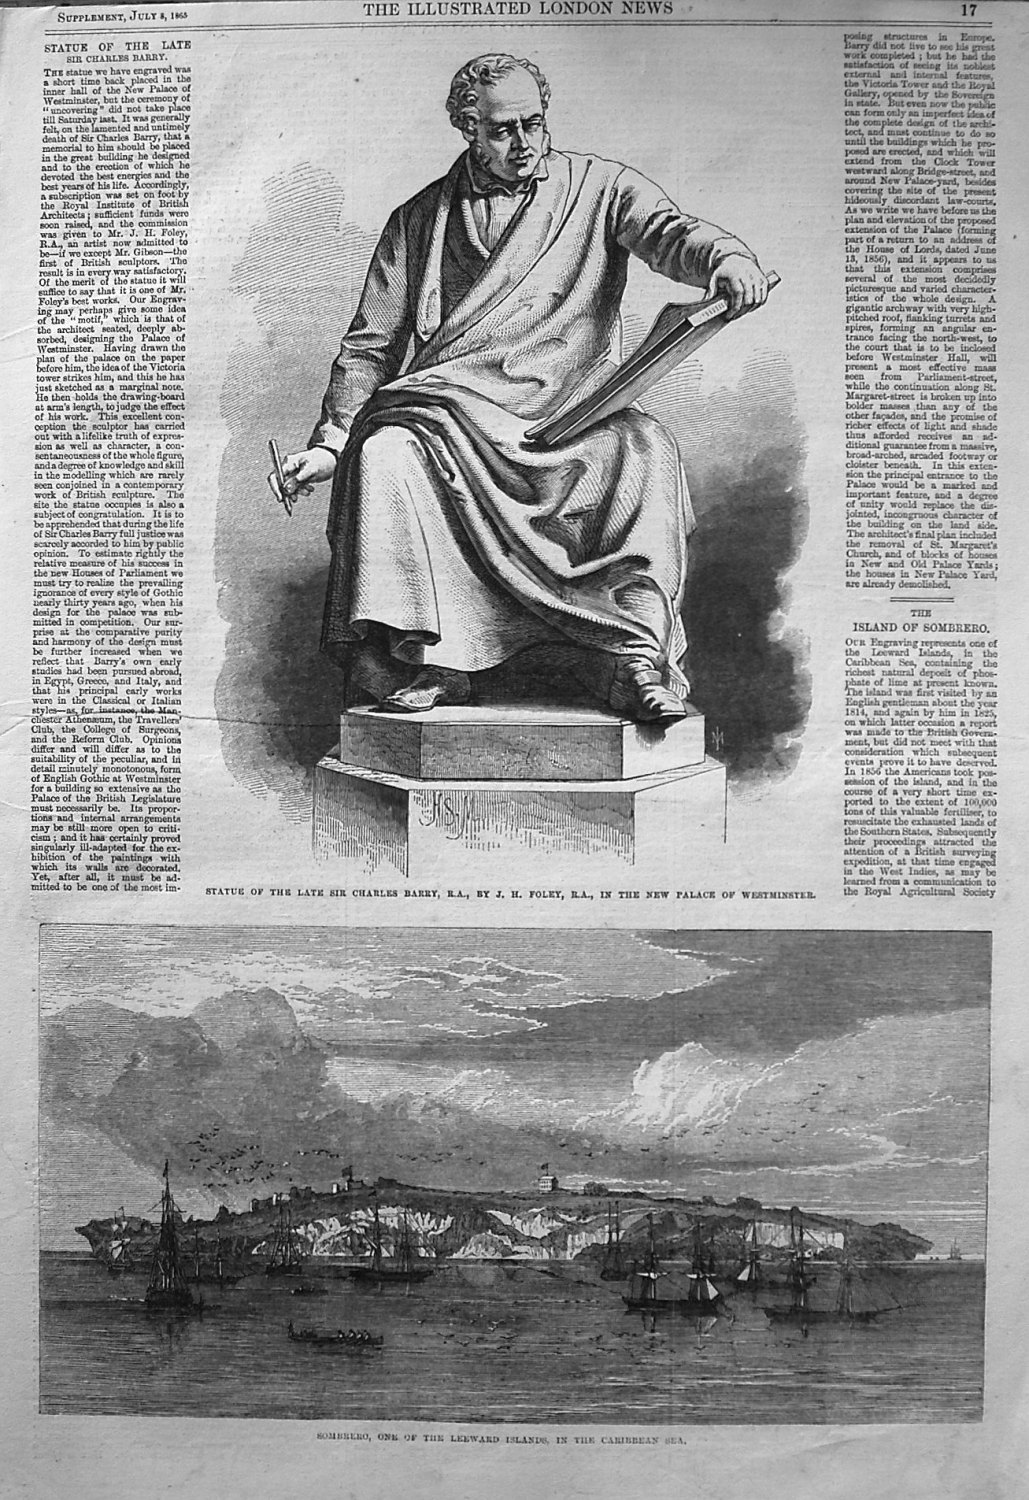 Statue of the Late Sir Charles Barry, R.A., by J.H. Foley, R.A., in the New